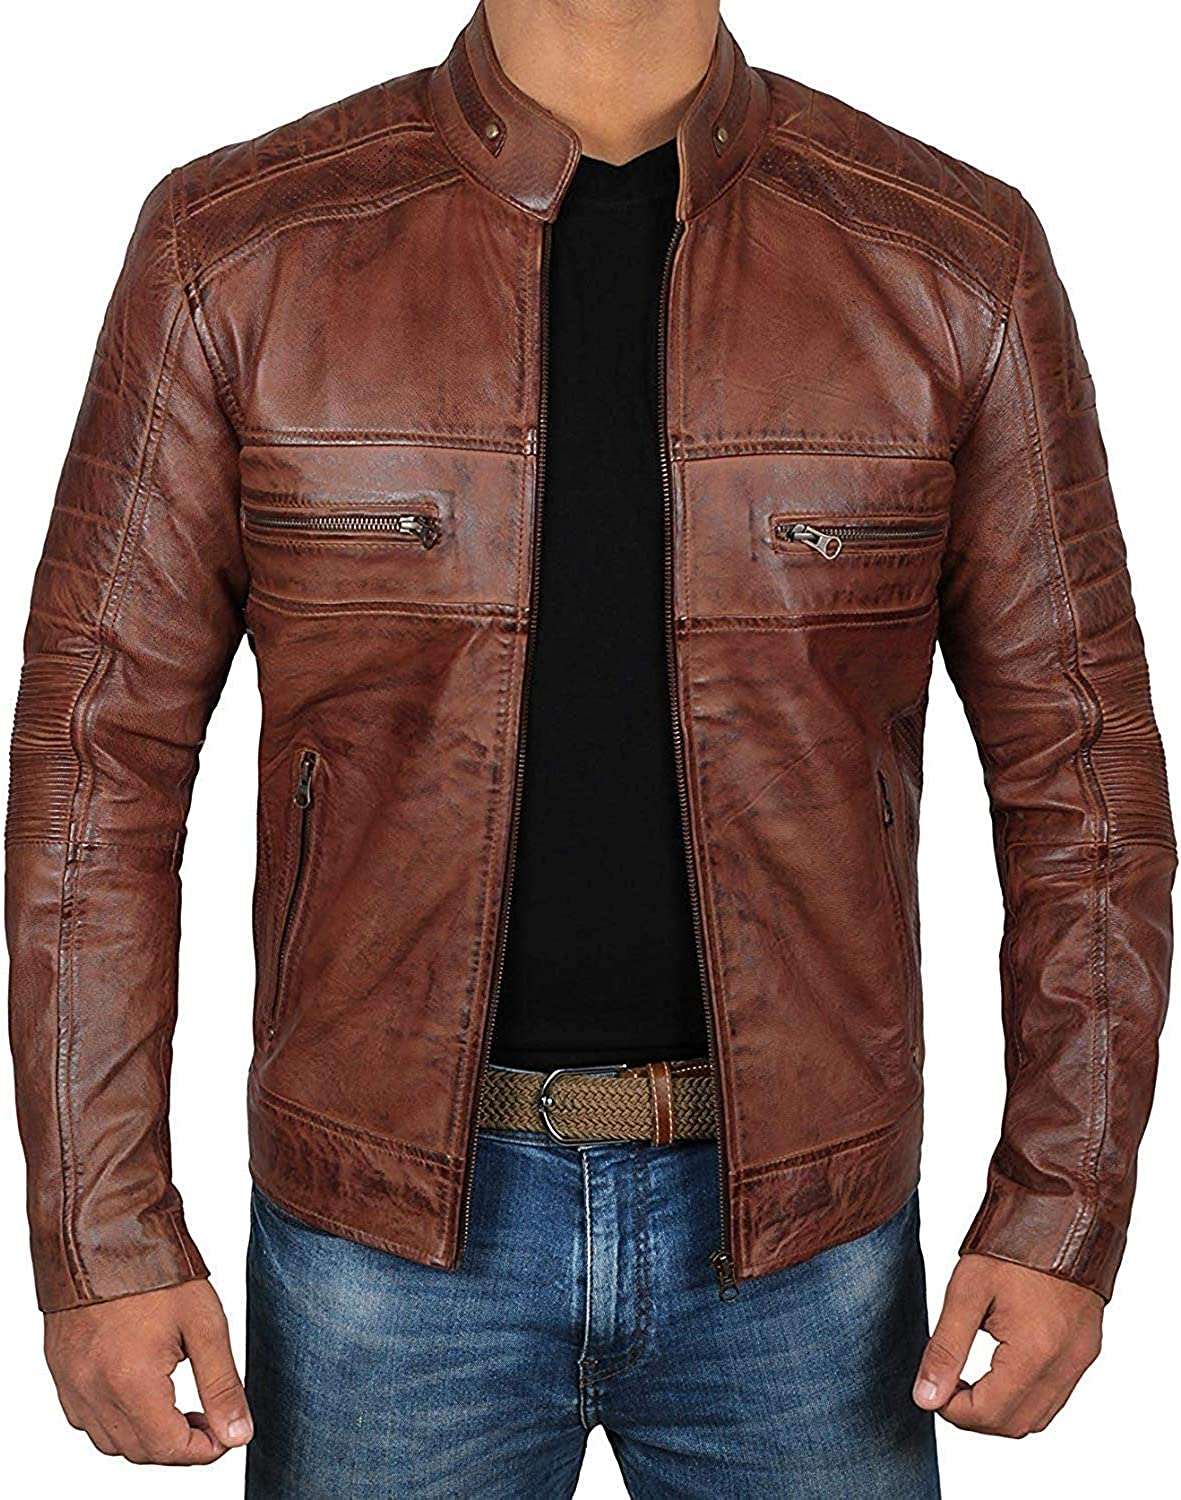 Brown Leather Jacket Mens - Dis Ranking TOP19 Racer Lambskin Cafe 5 ☆ popular Real